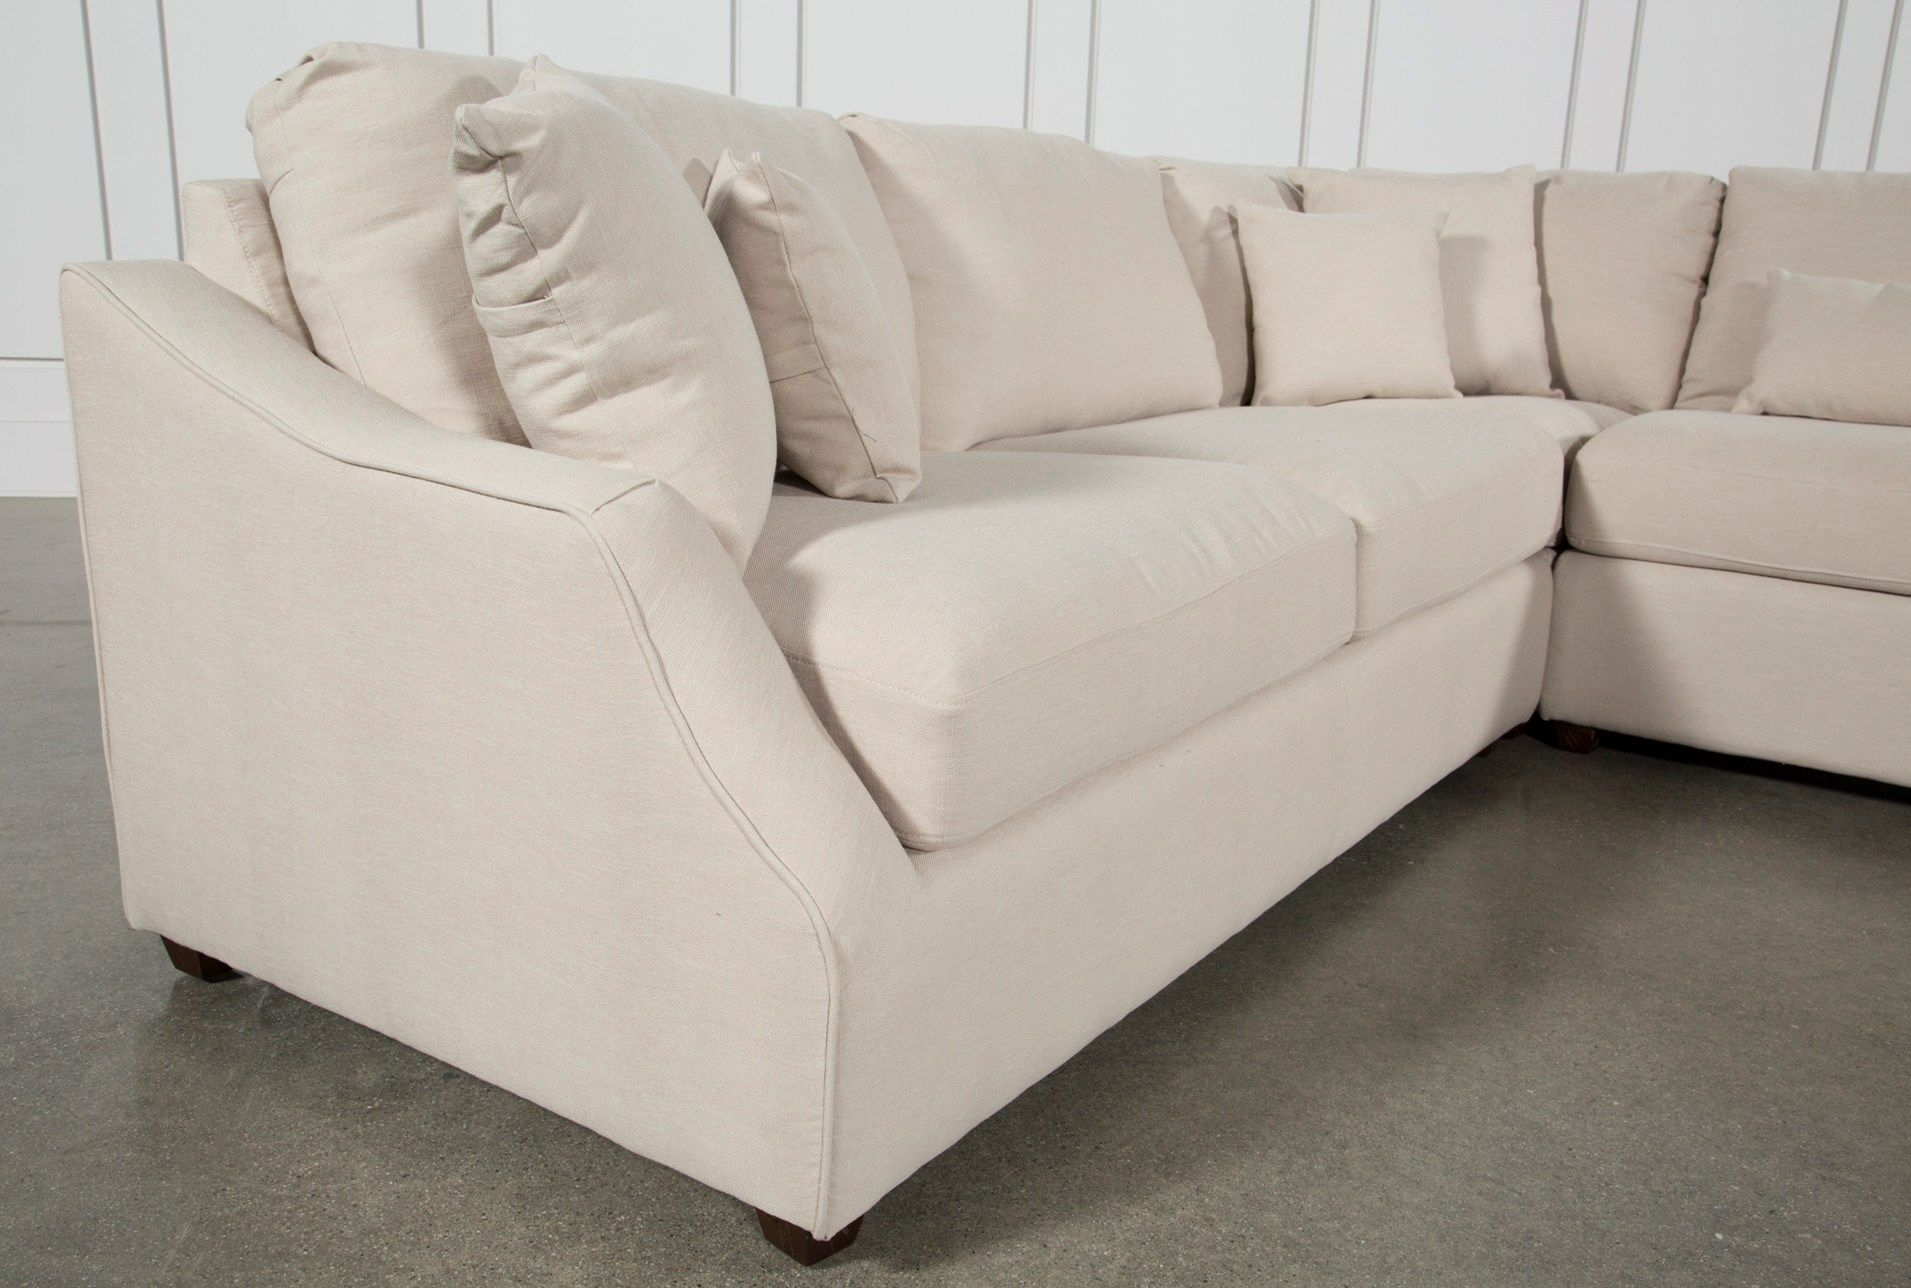 Magnolia Home Homestead 3 Piece Sectionaljoanna Gaines | Joanna Inside Magnolia Home Homestead Sofa Chairs By Joanna Gaines (Image 12 of 25)